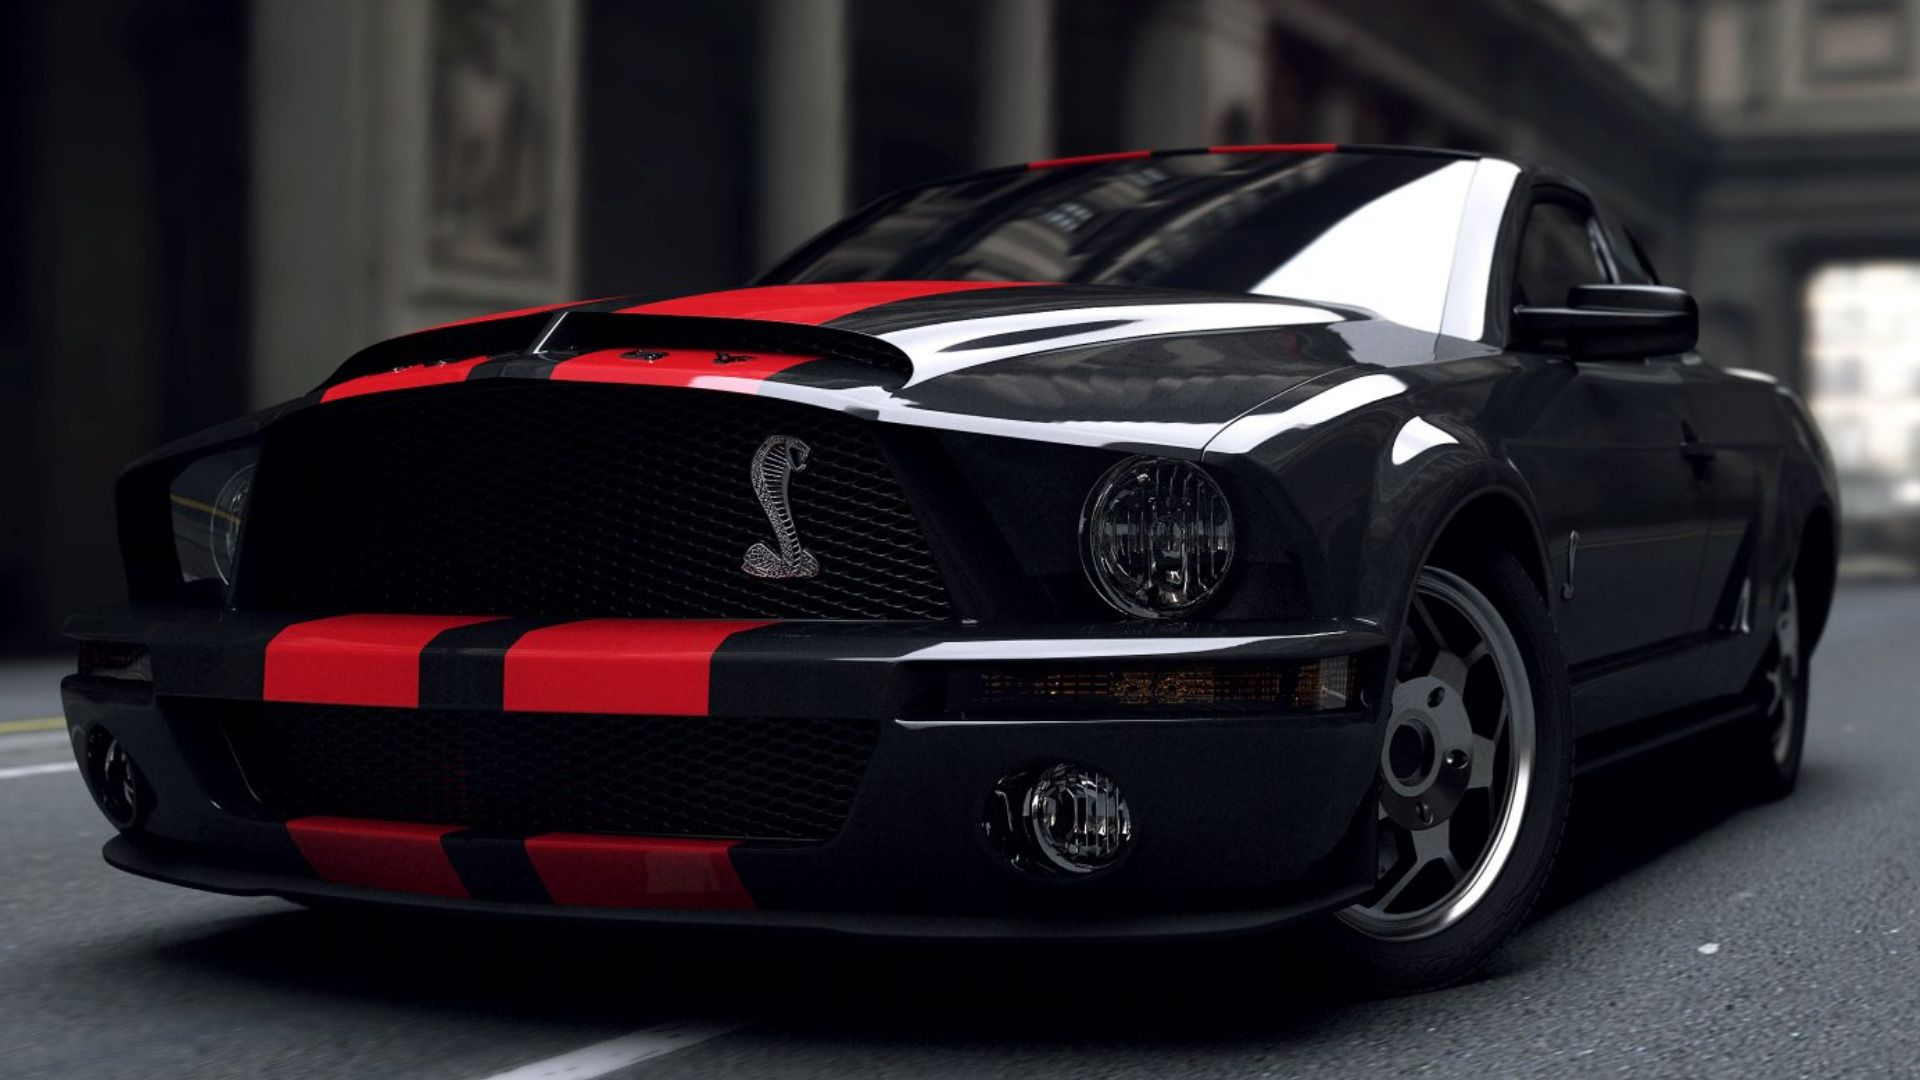 Mustang 2015 Shelby Gt500